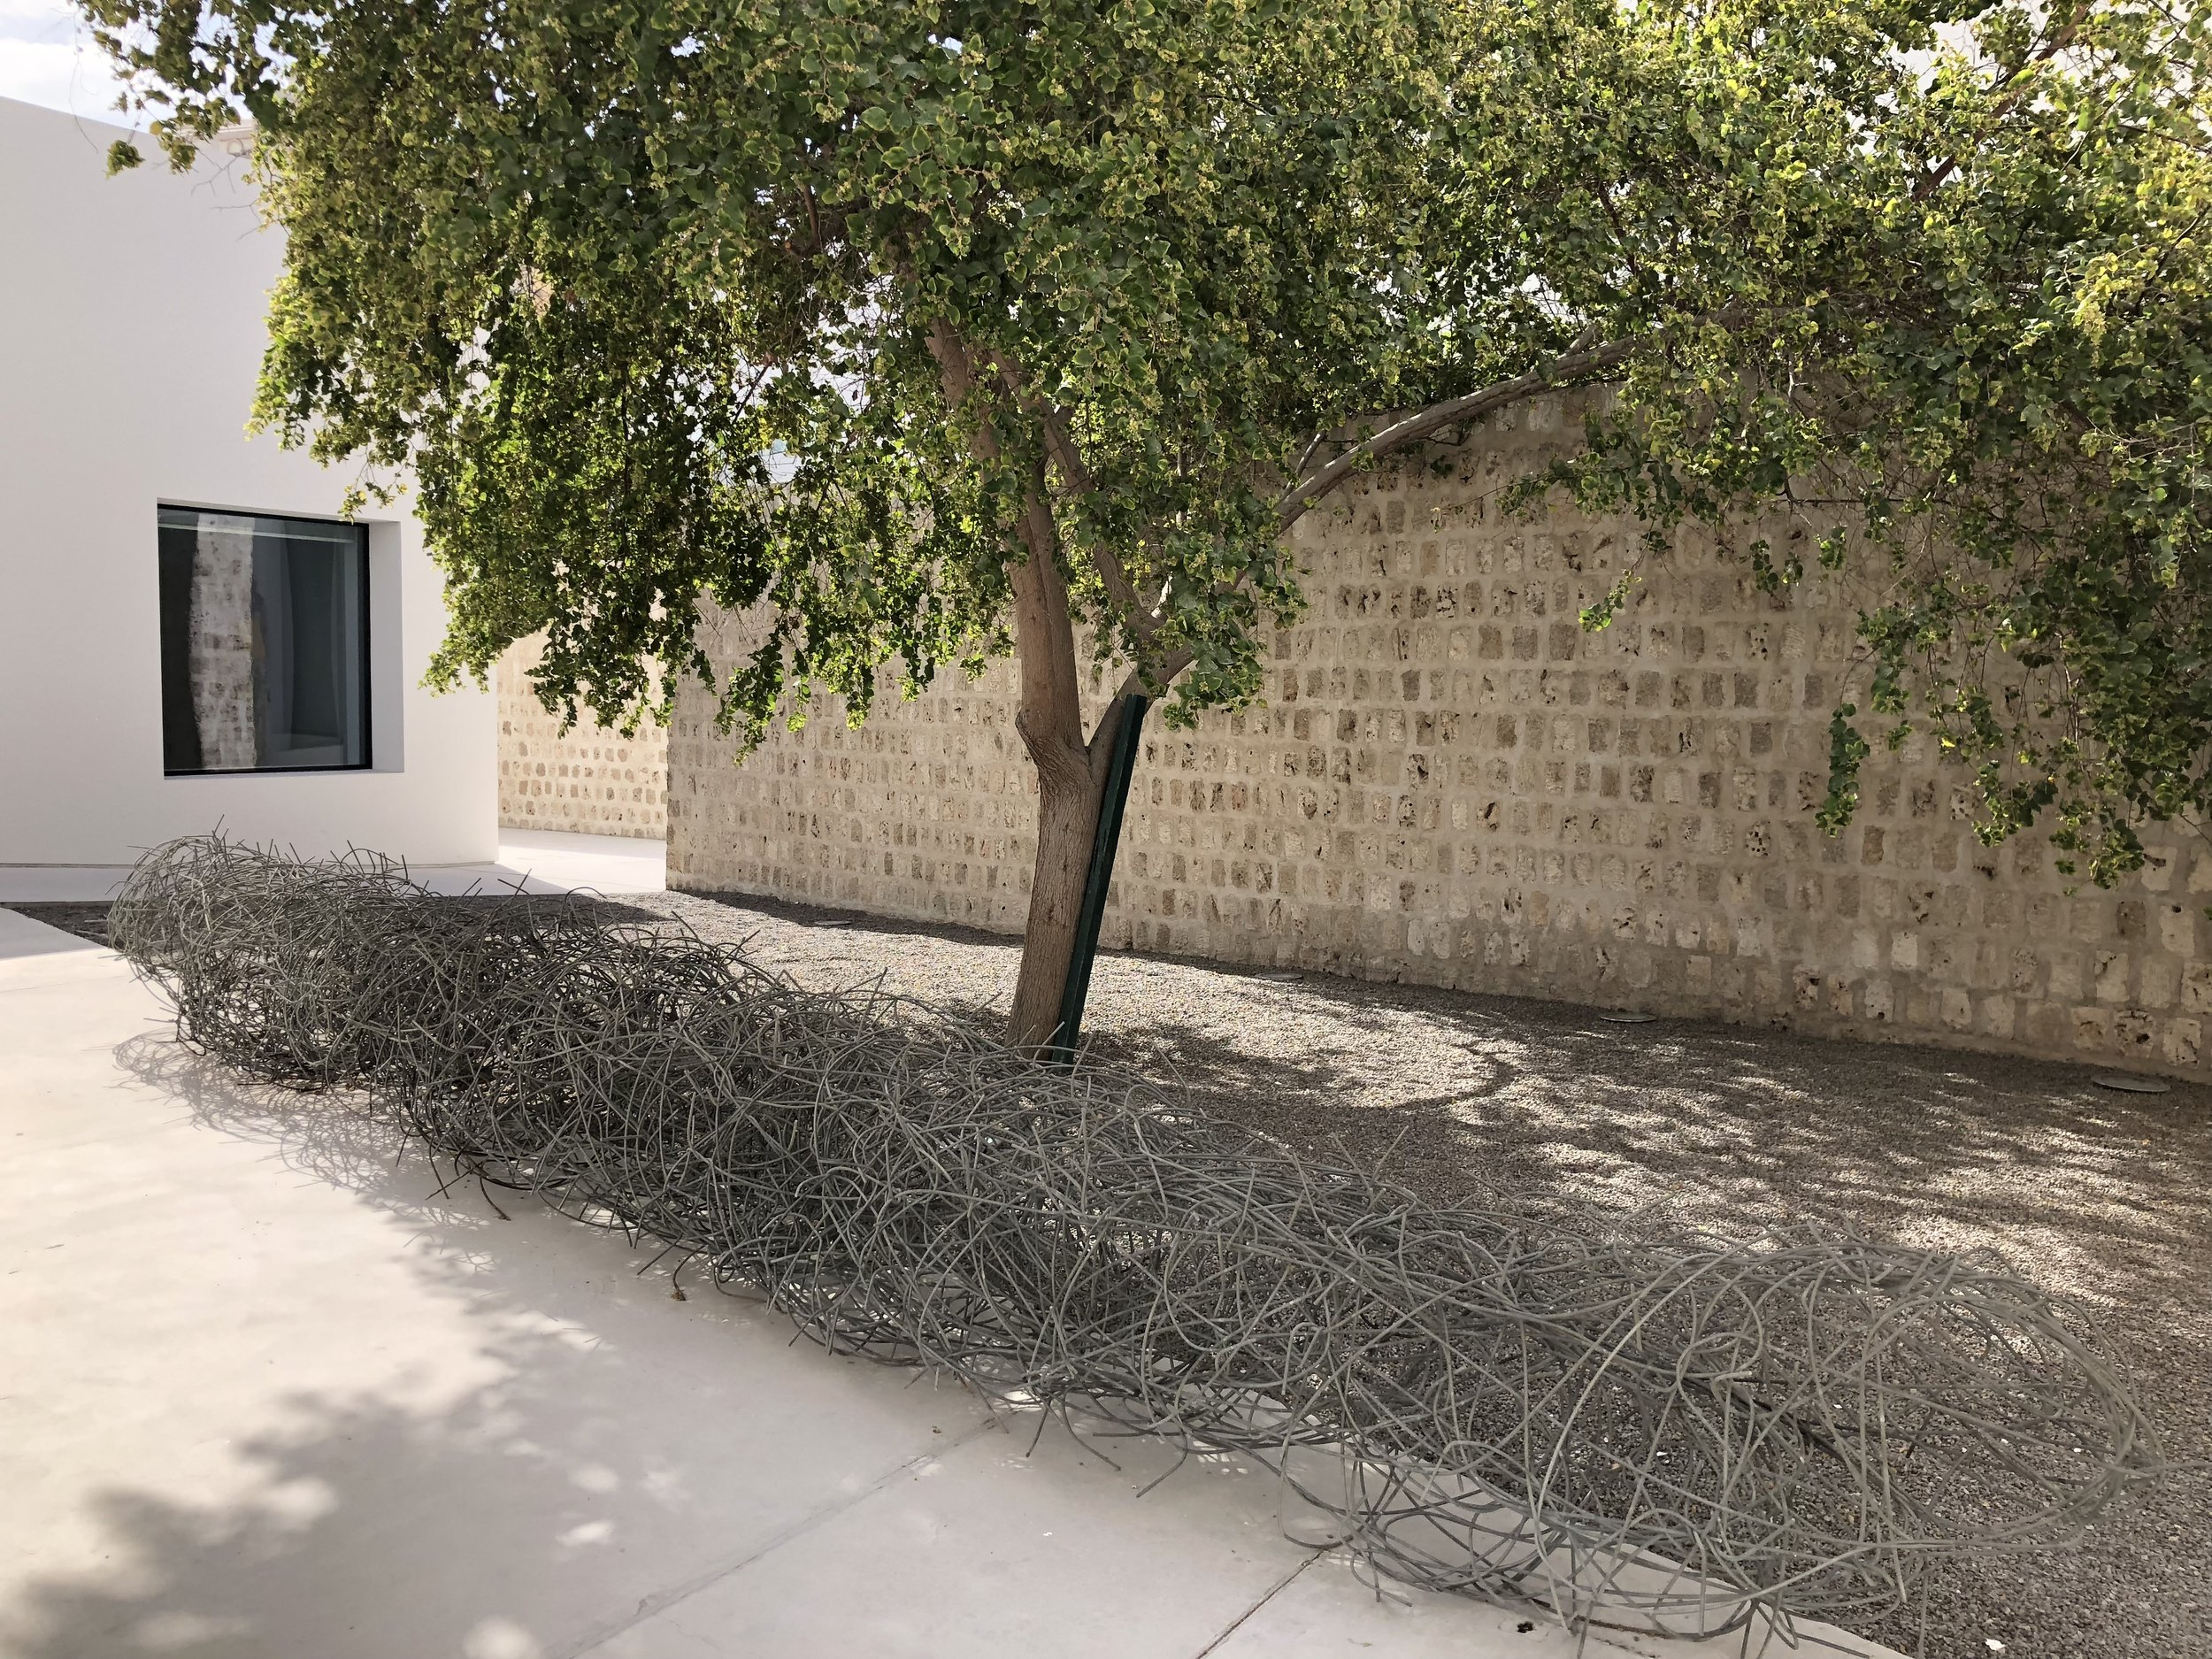 Another of Sharif's large public installations inside the Sharjah Art Foundation spaces.